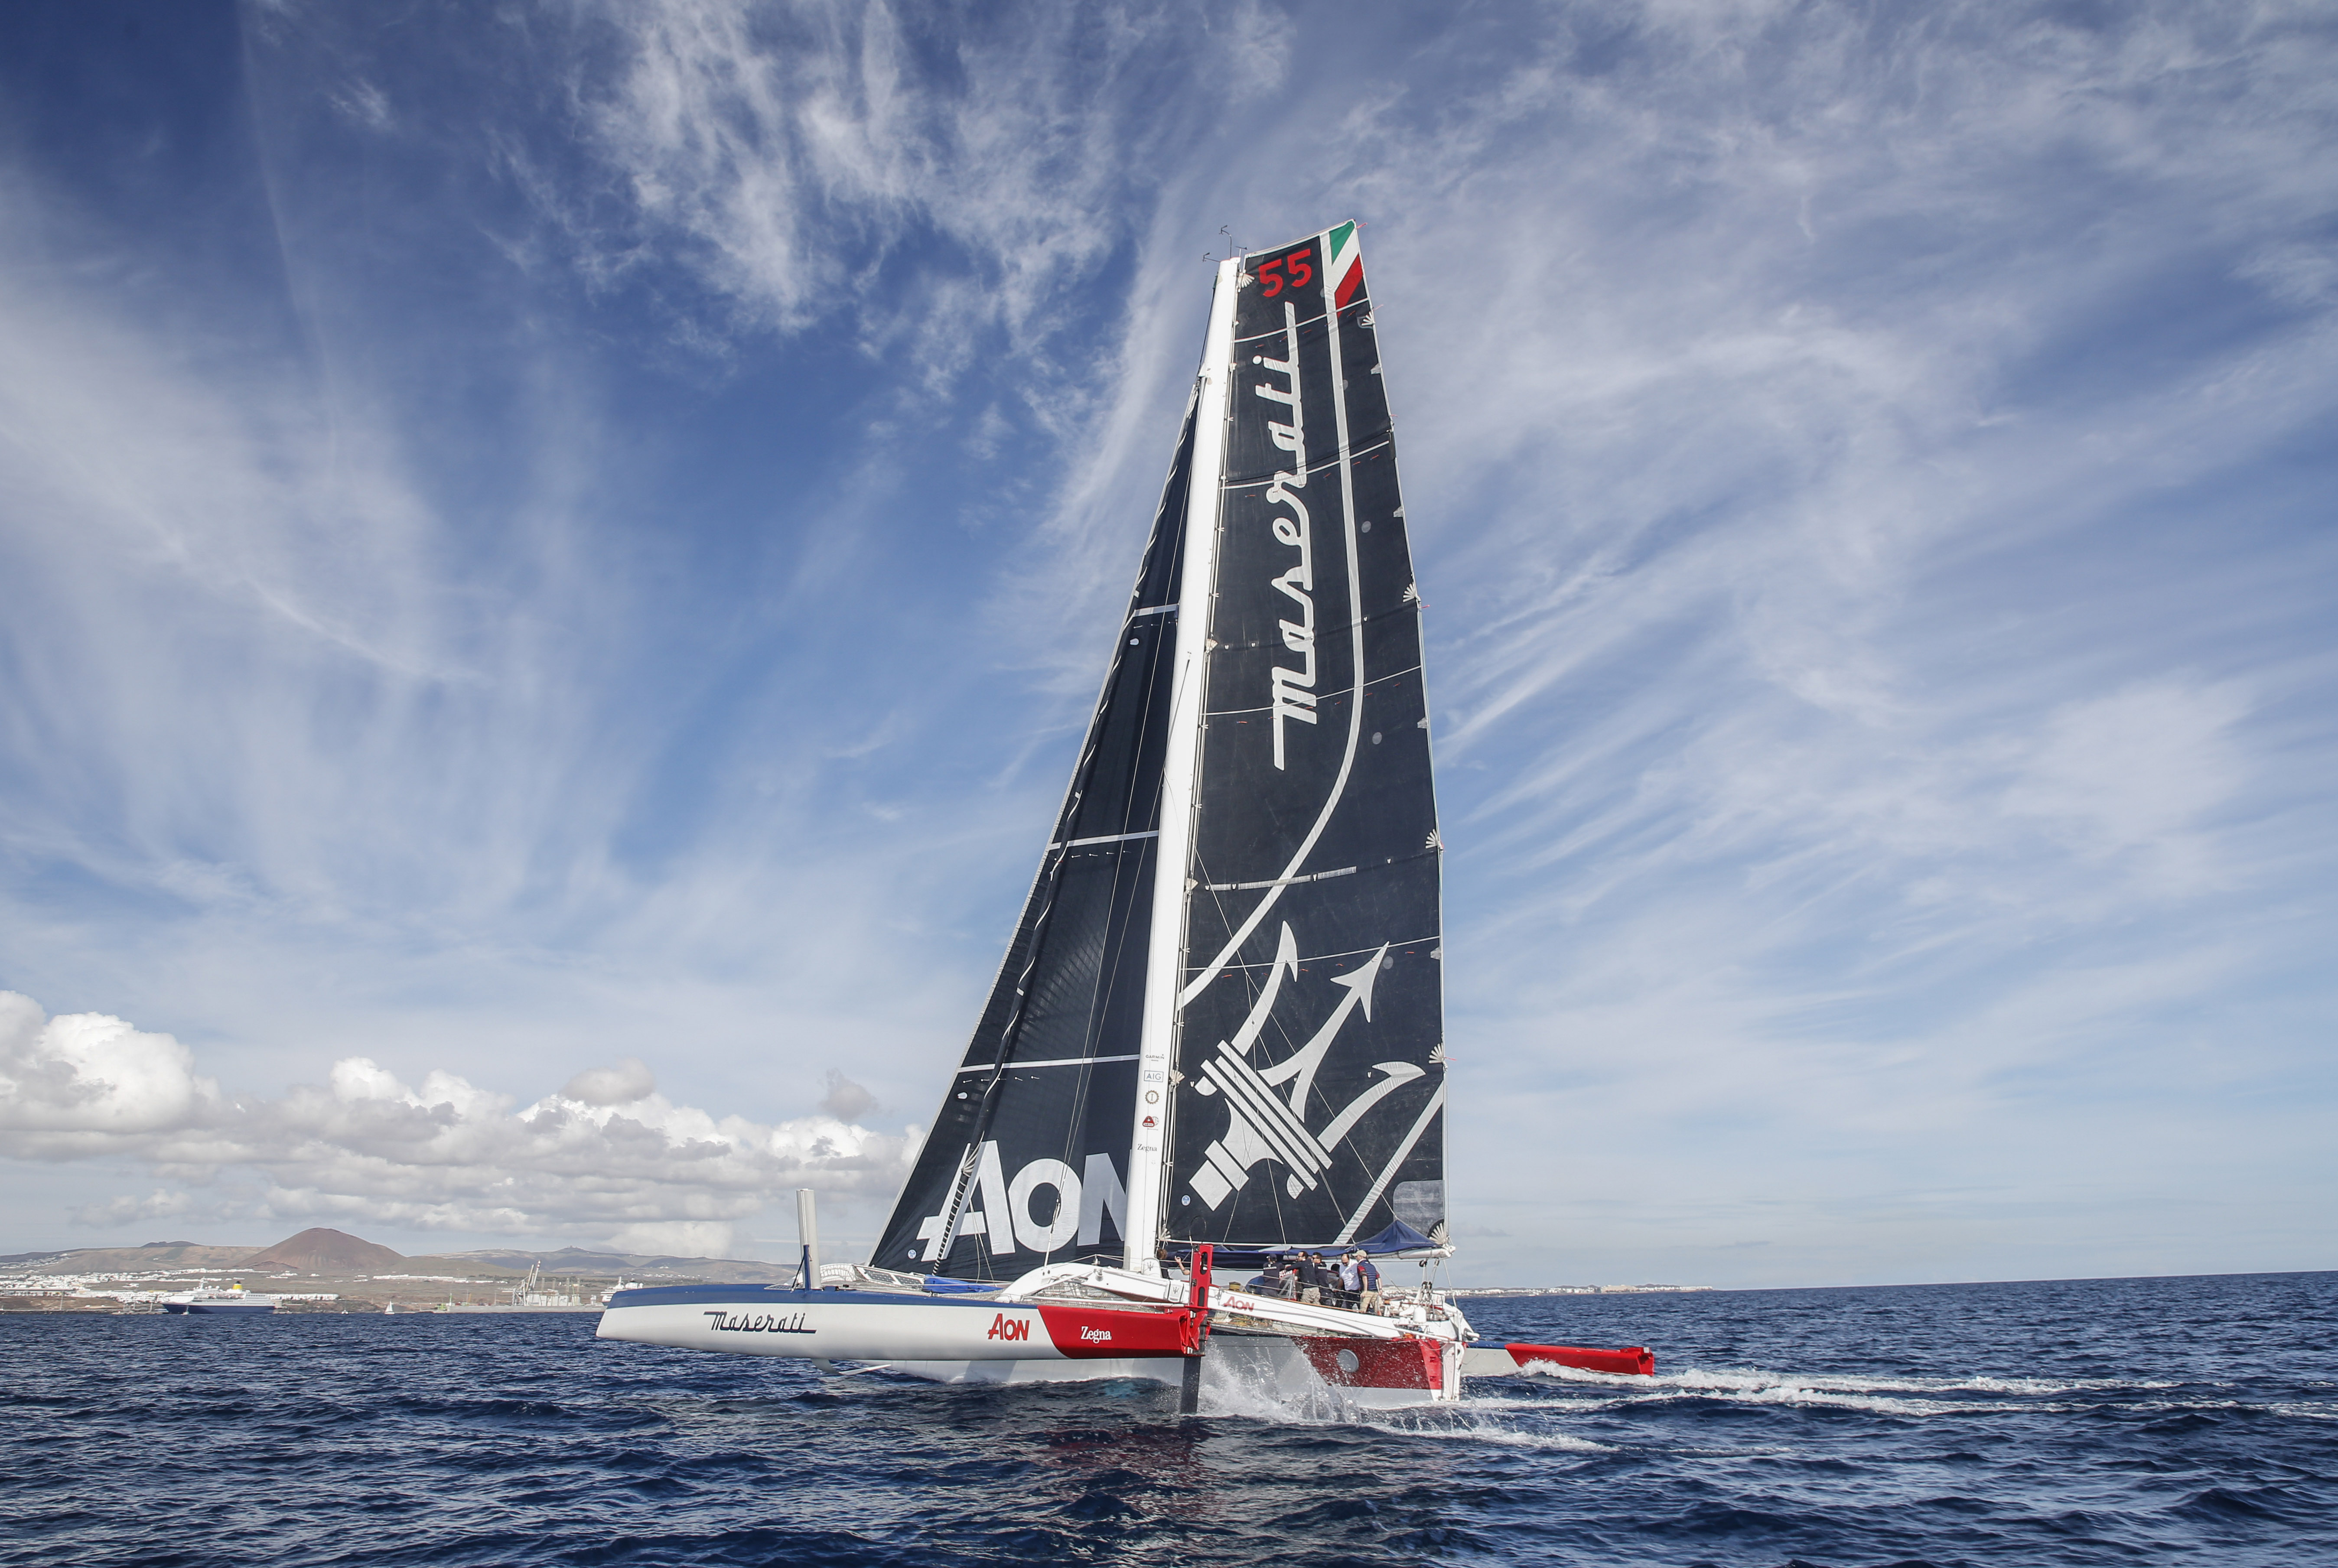 Maserati Multi 70 trimaran sailing the RORC Race